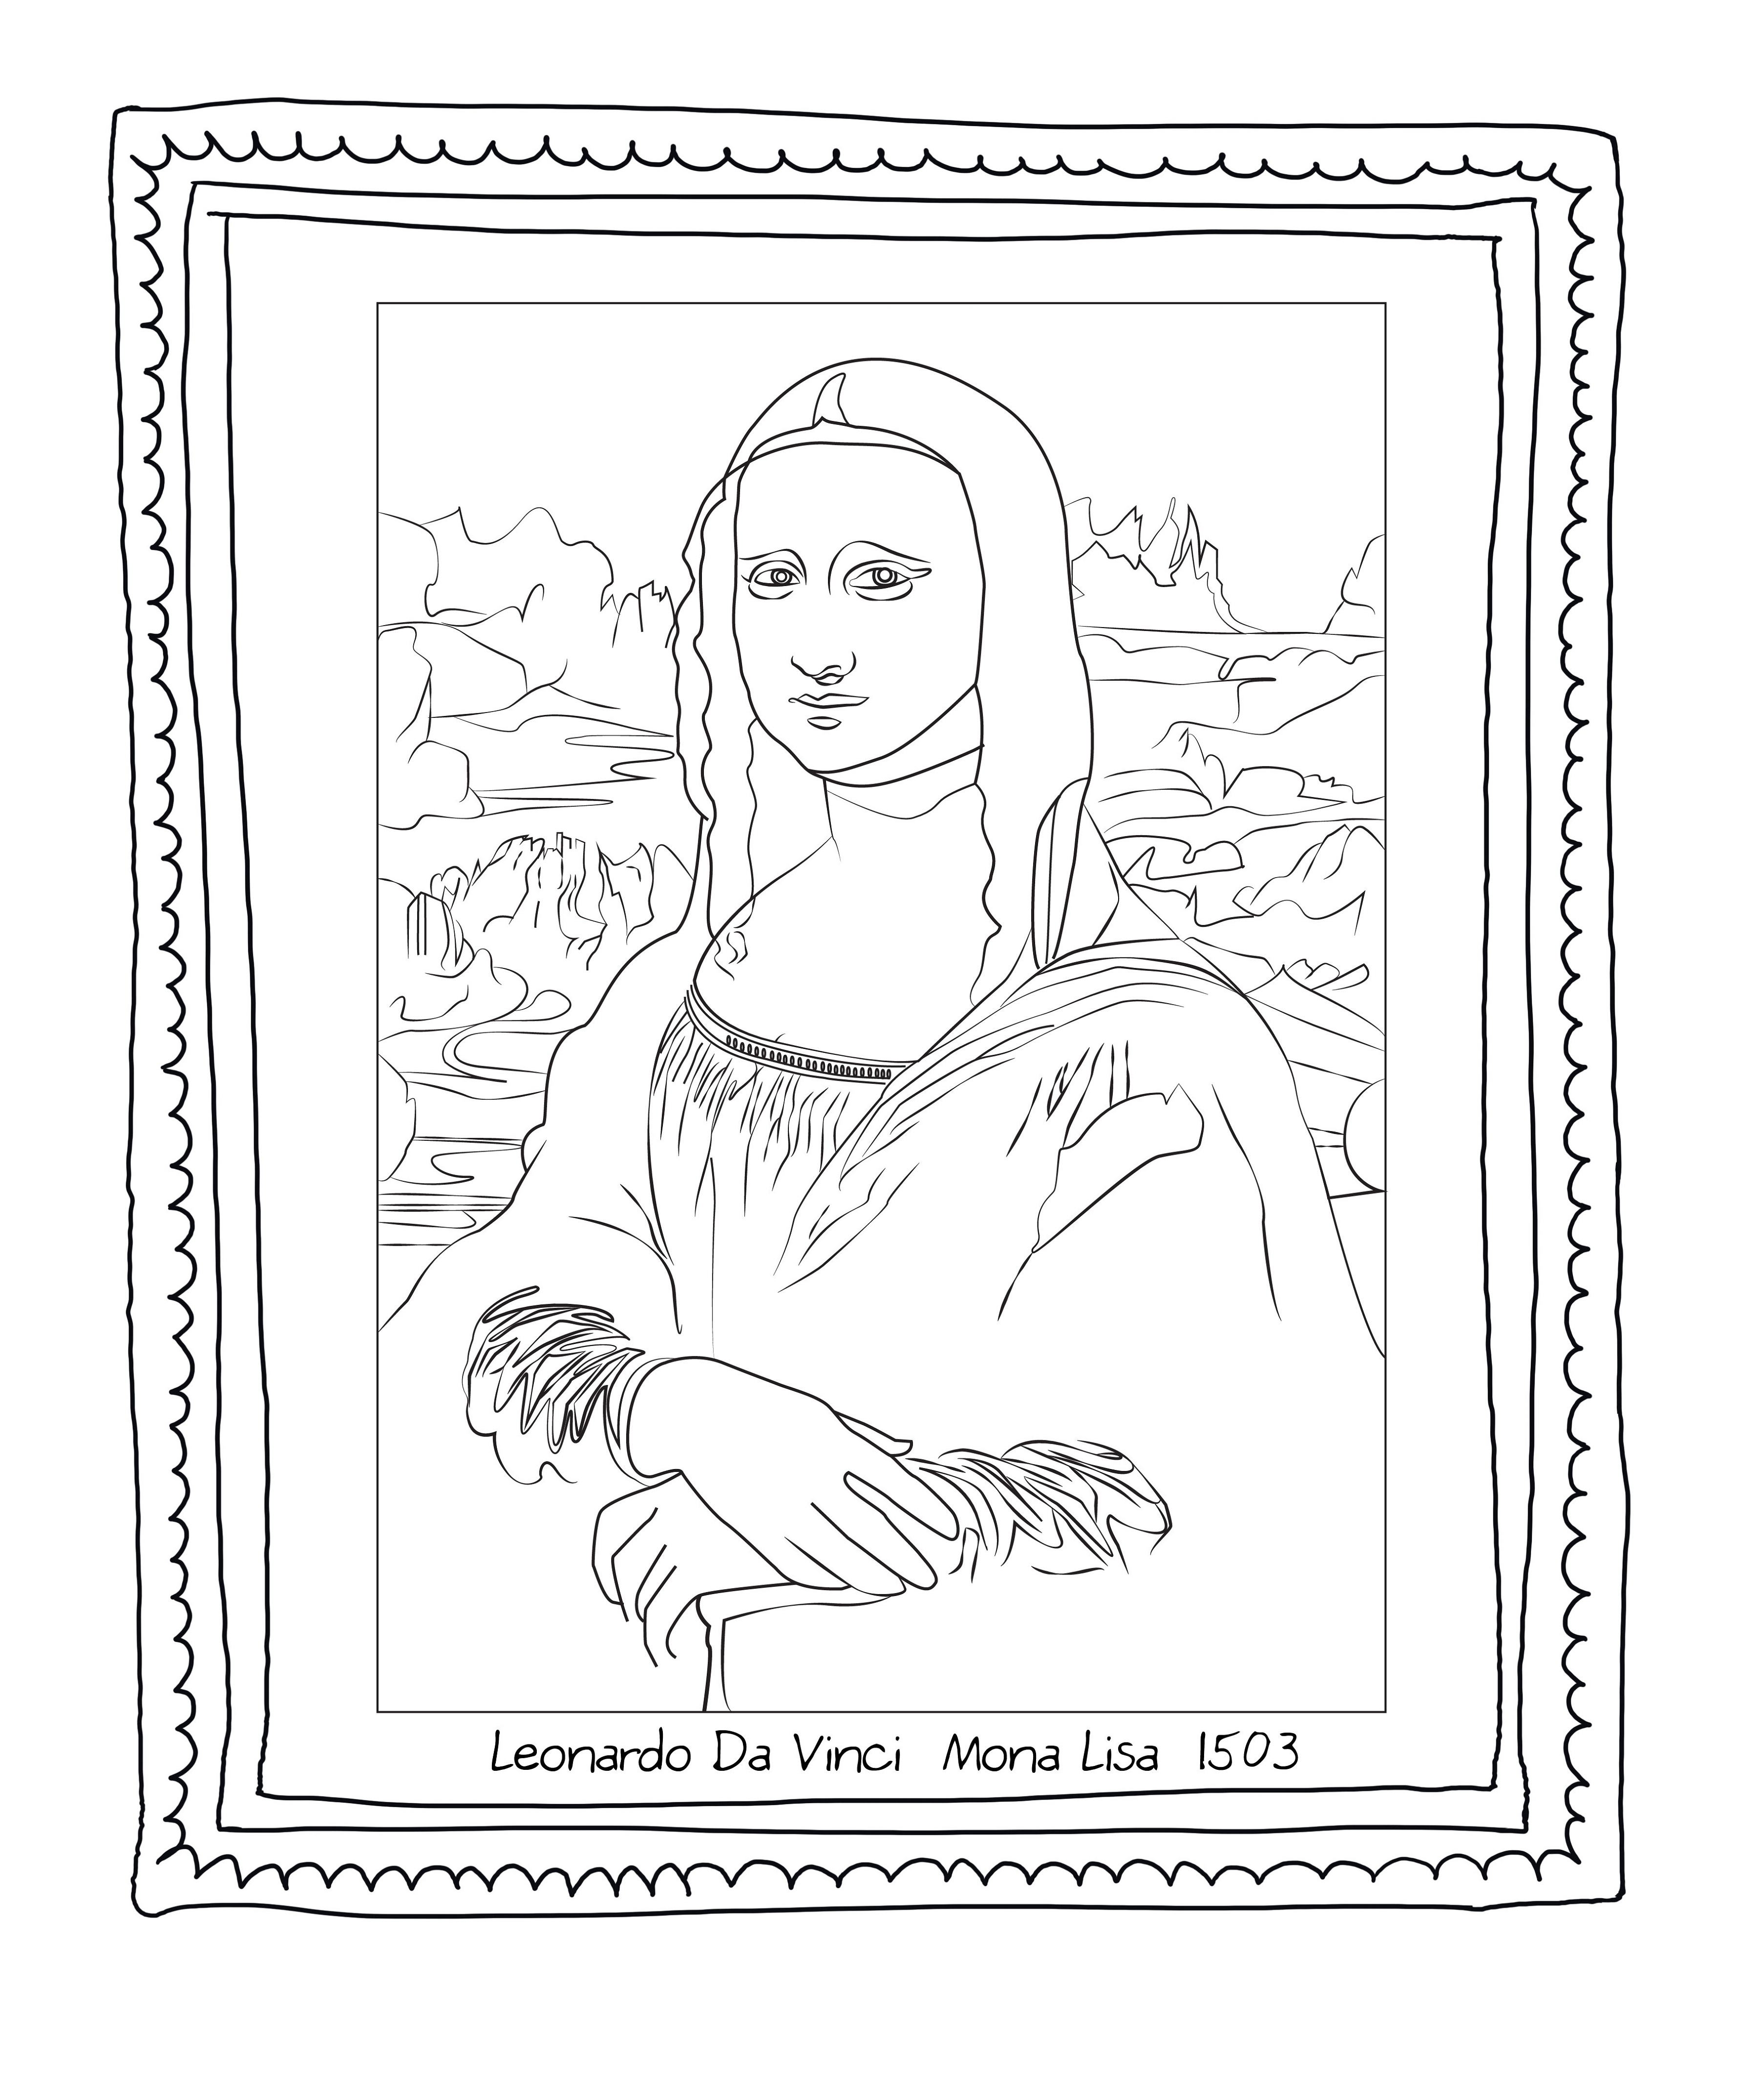 Mona Lisa Coloring Page Printable